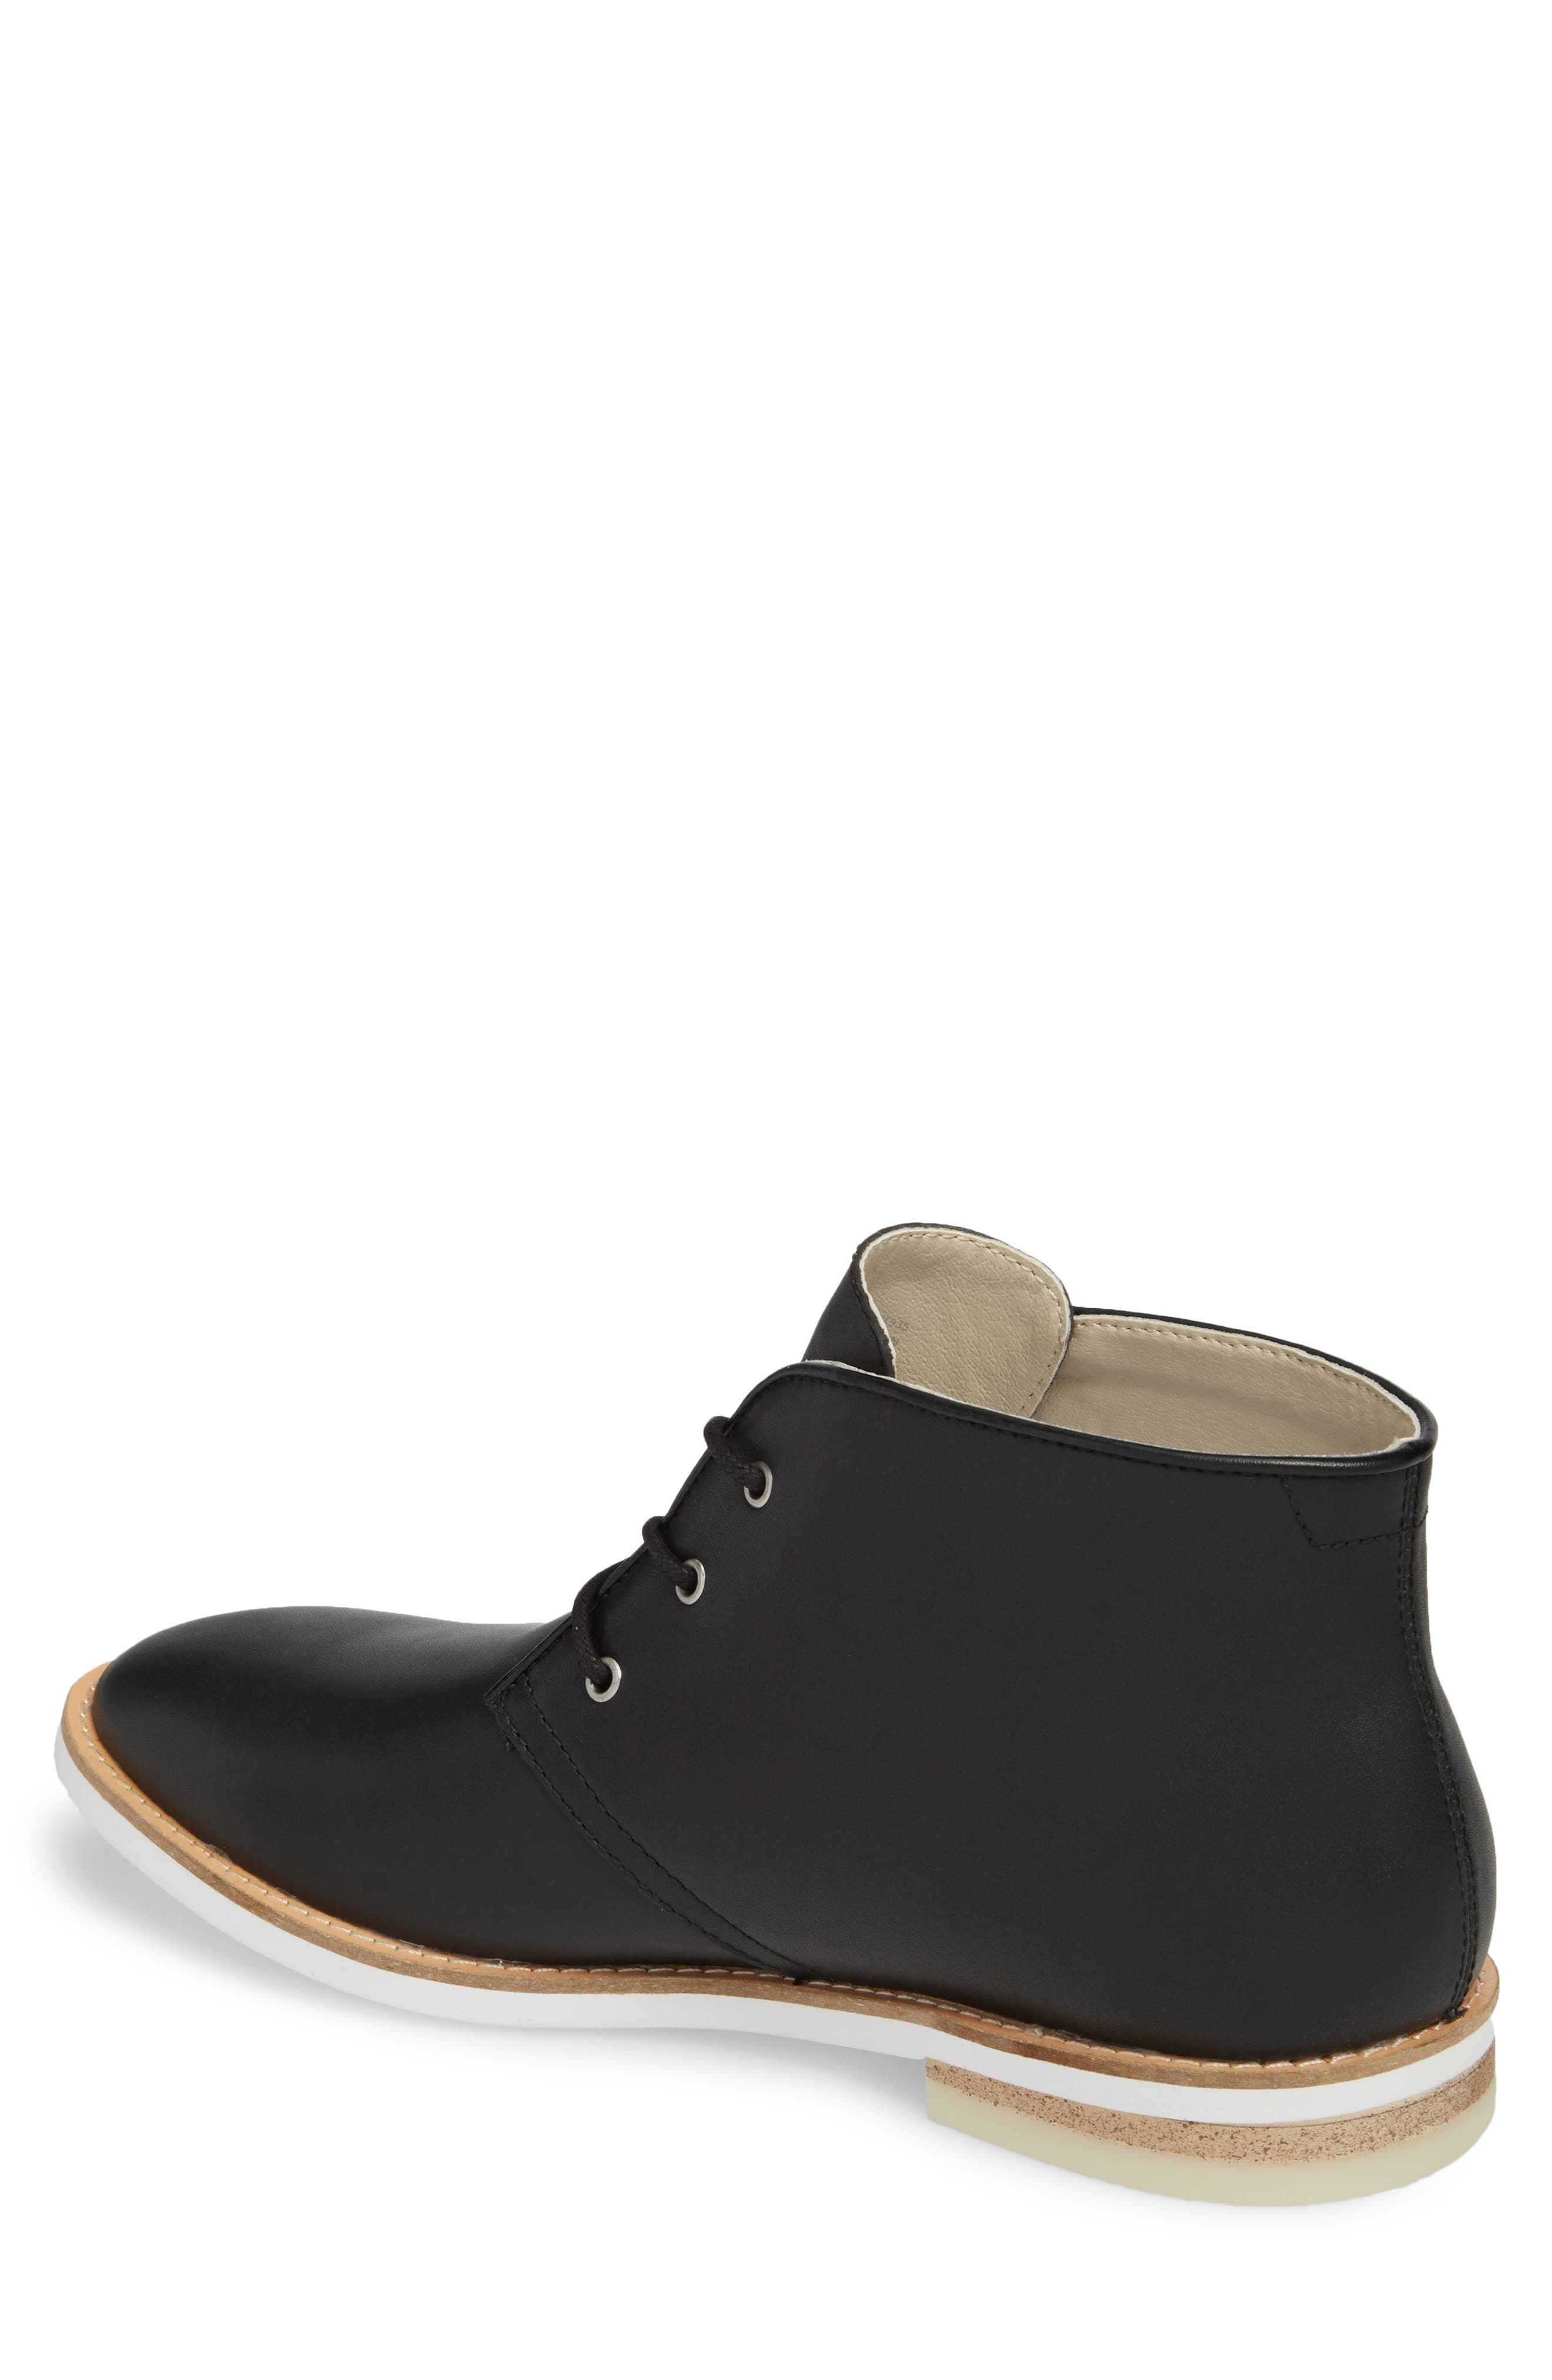 Albe Chukka Boot,                             Alternate thumbnail 2, color,                             Black Leather